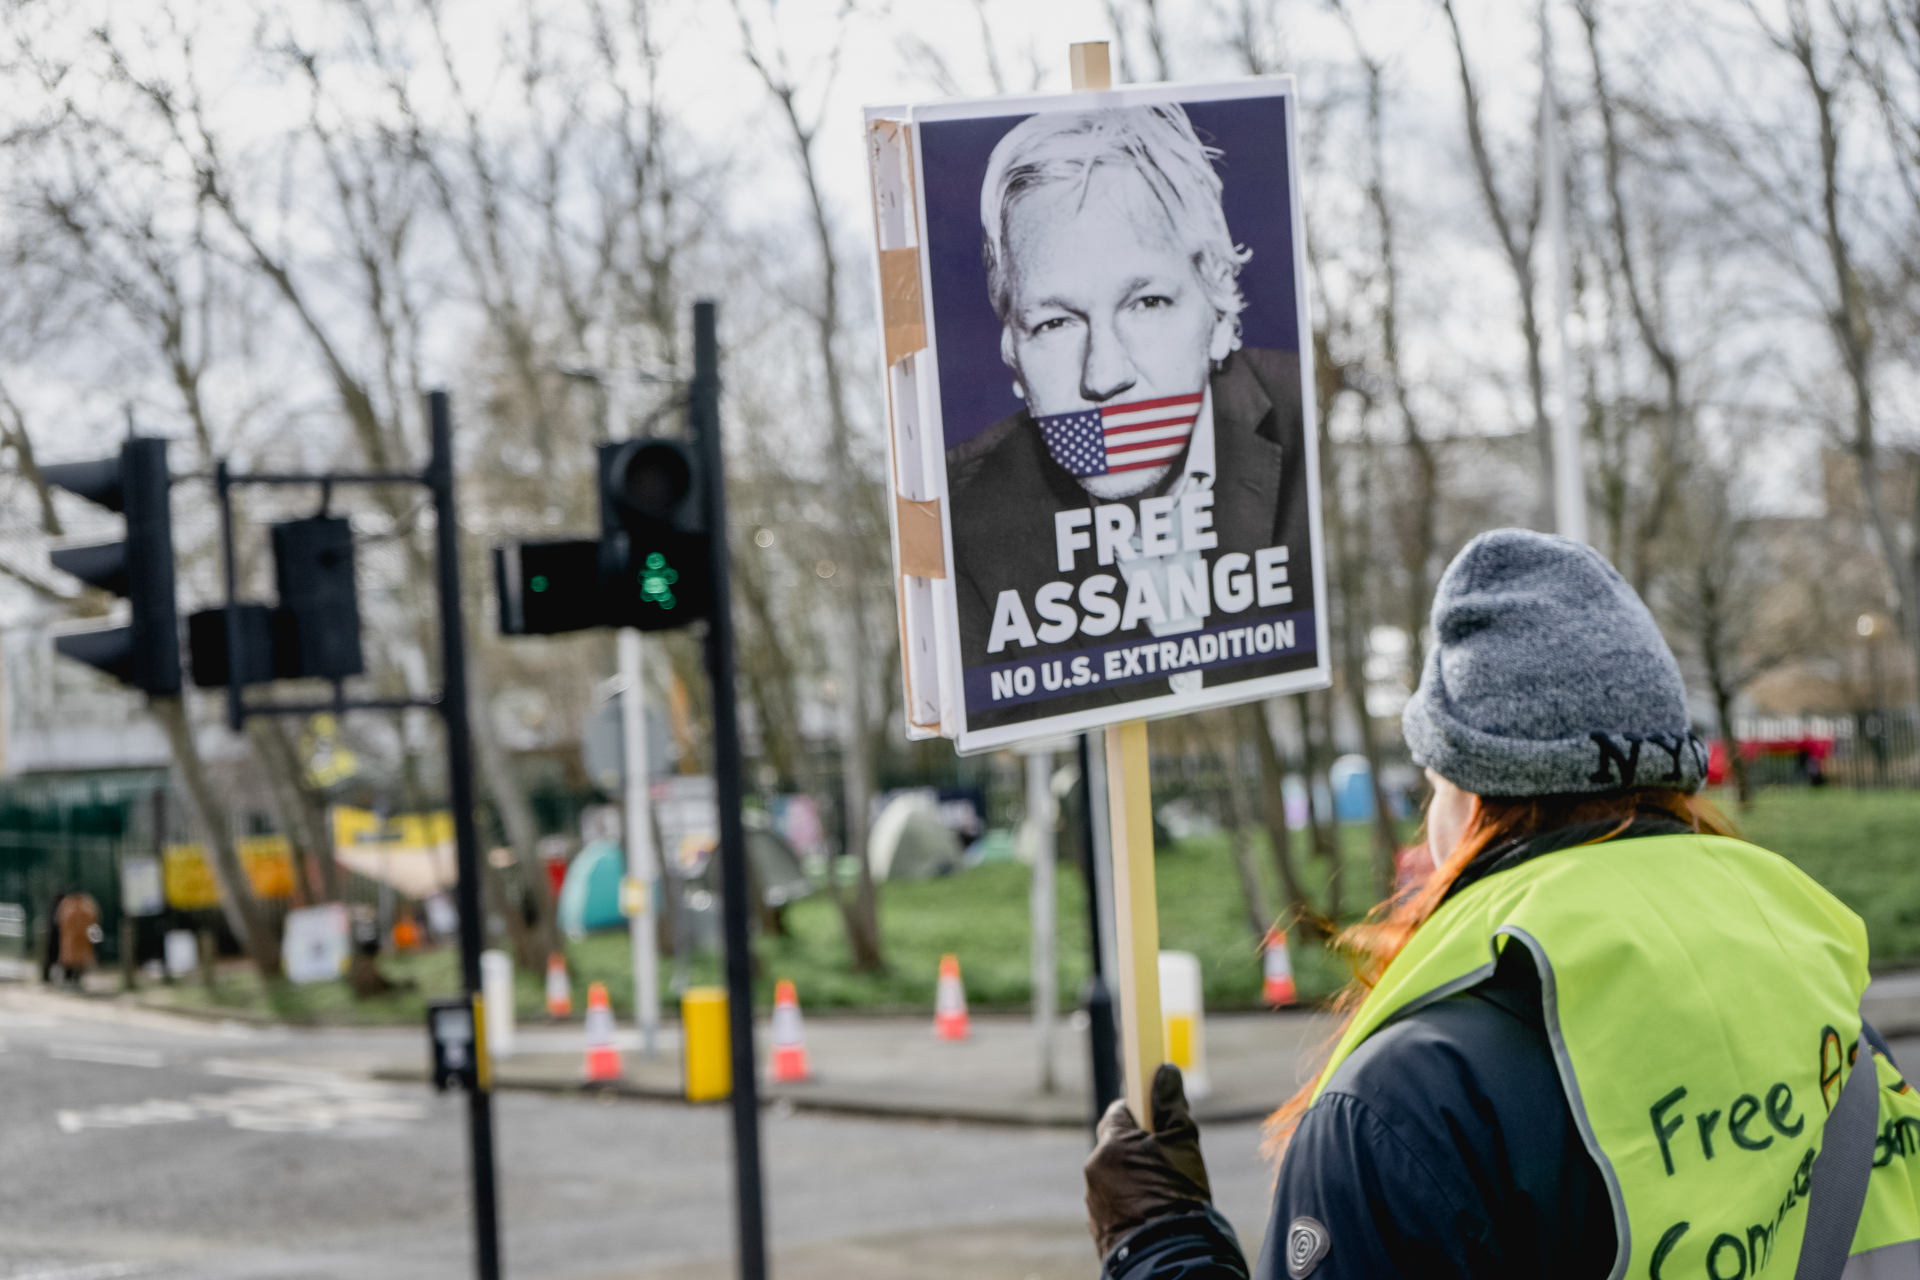 Assange Court Report Day 4: Afternoon